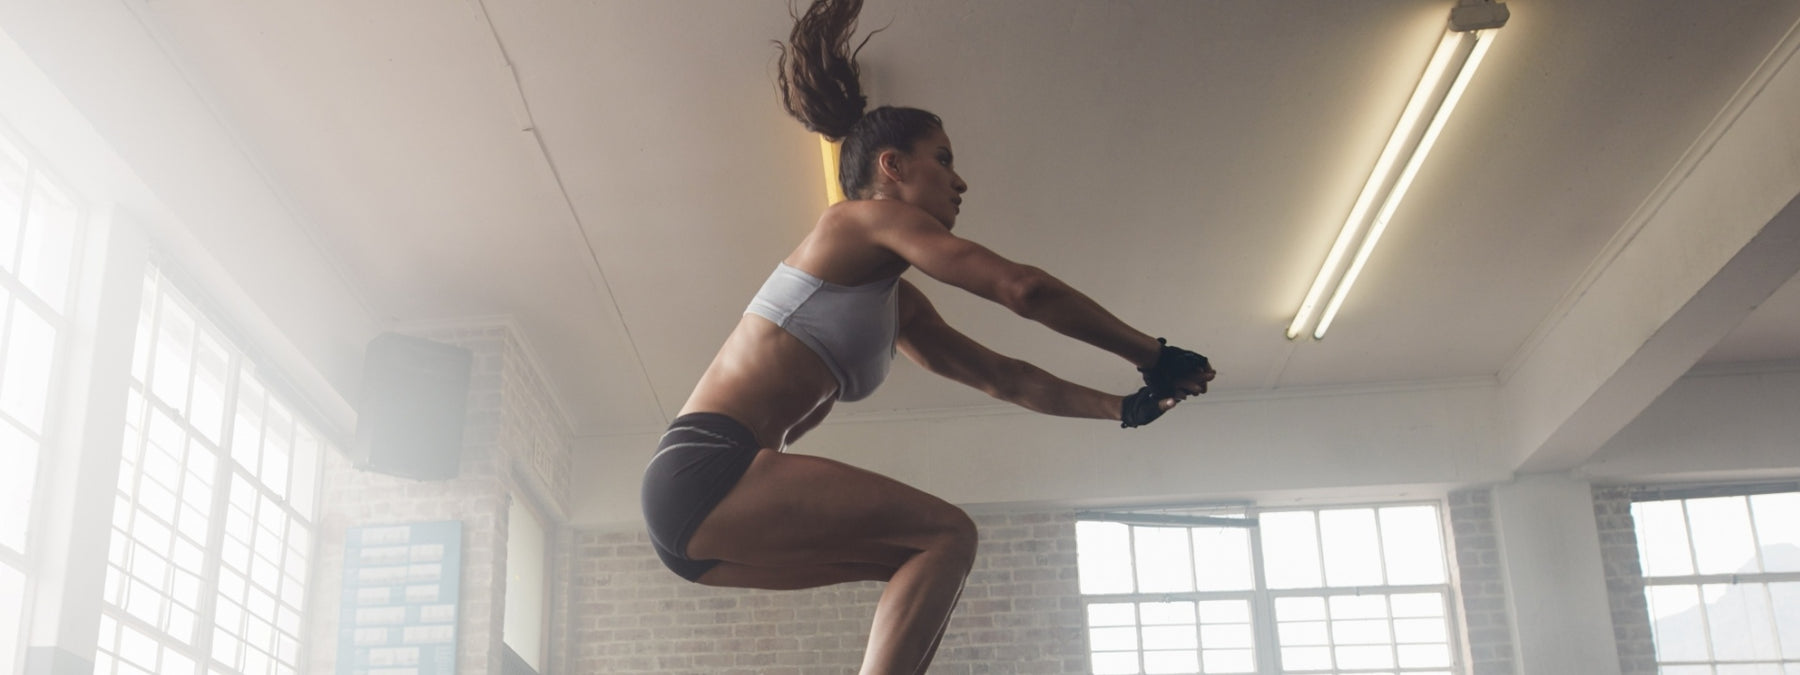 Using Plyometrics to Power Up Your Gains